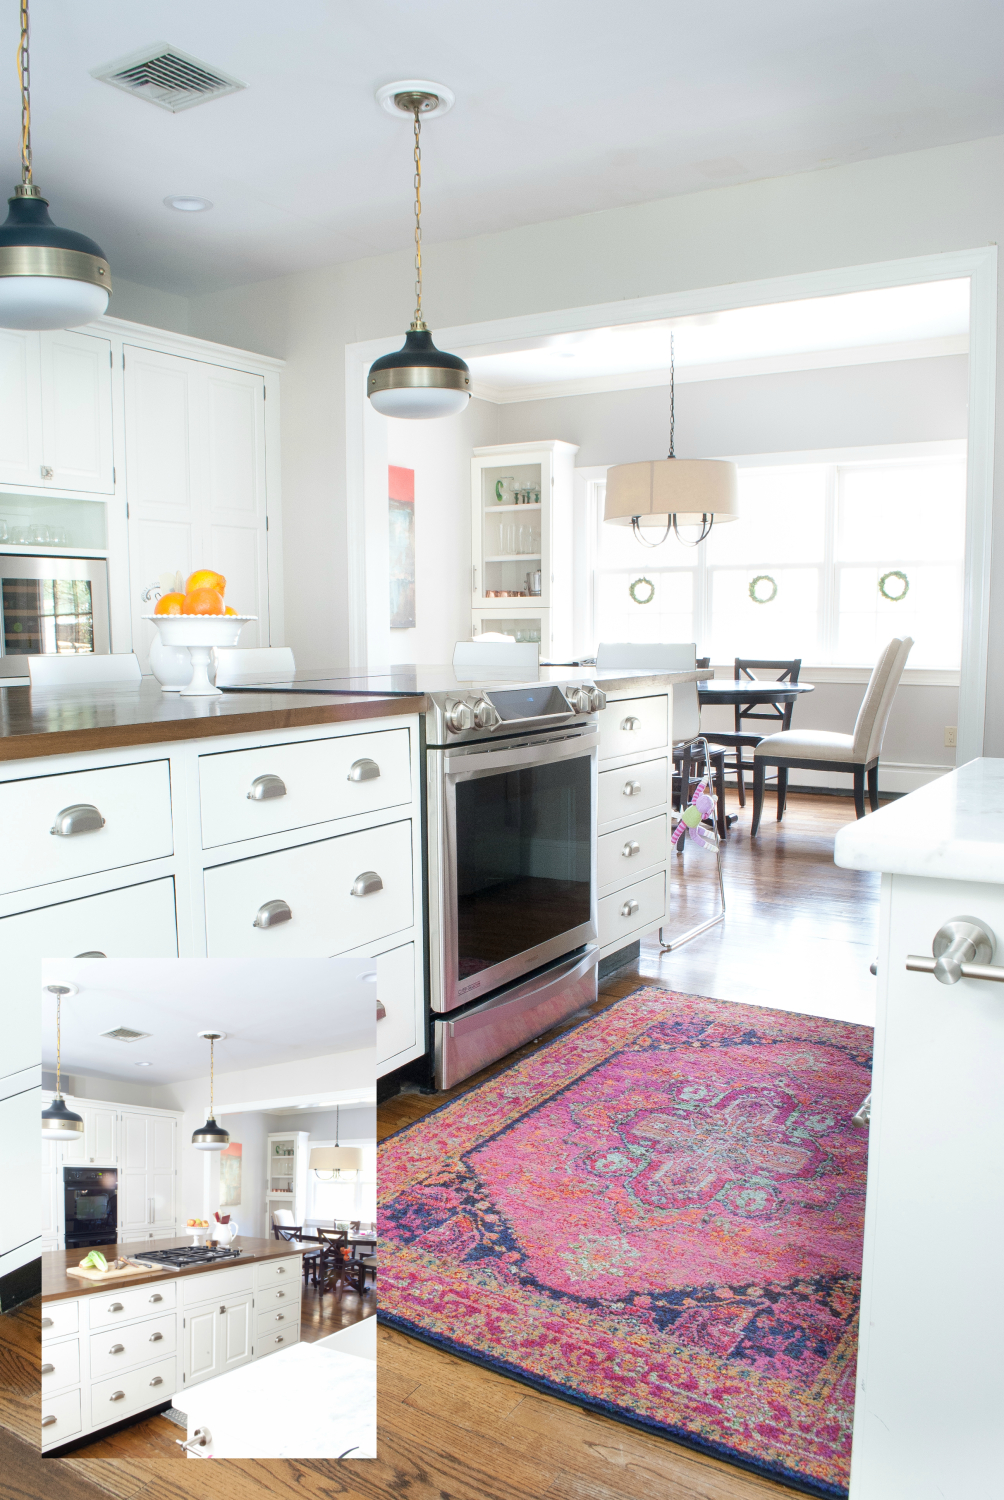 Practical and doable steps for taking an outdated and imperfect kitchen and turning it into one you love...without a gut job!